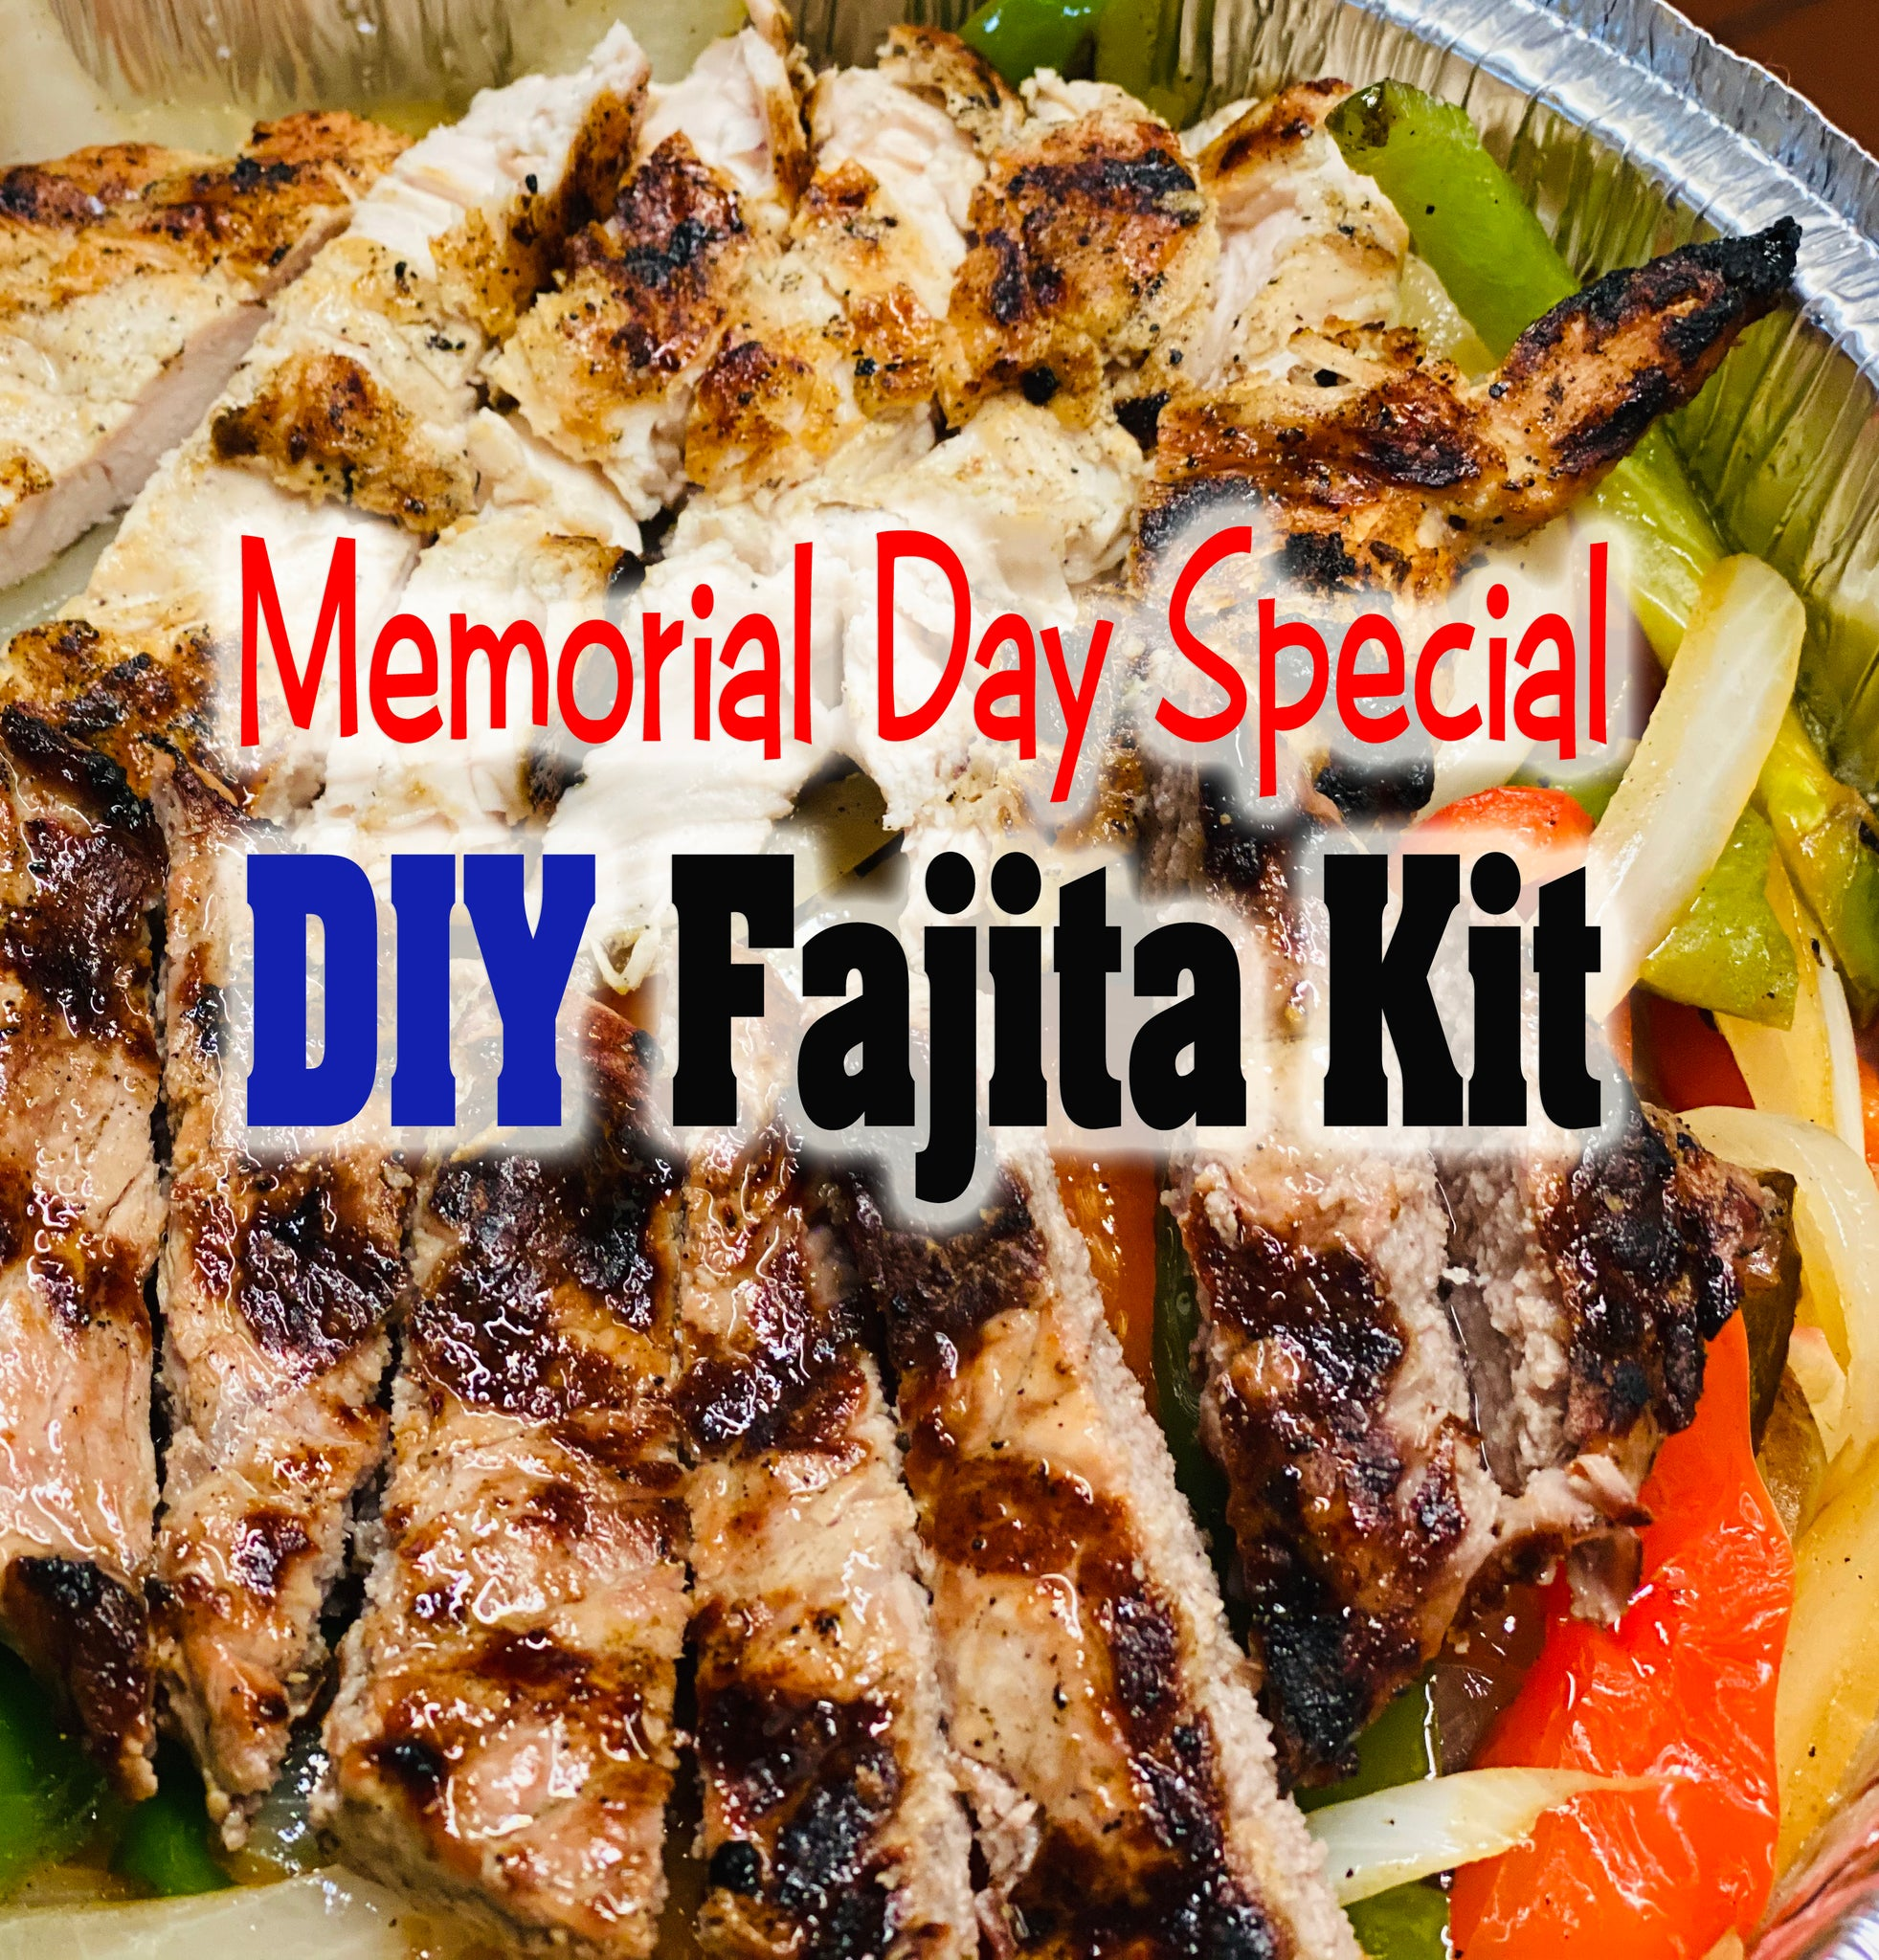 Fajita Kit Special for Memorial Day